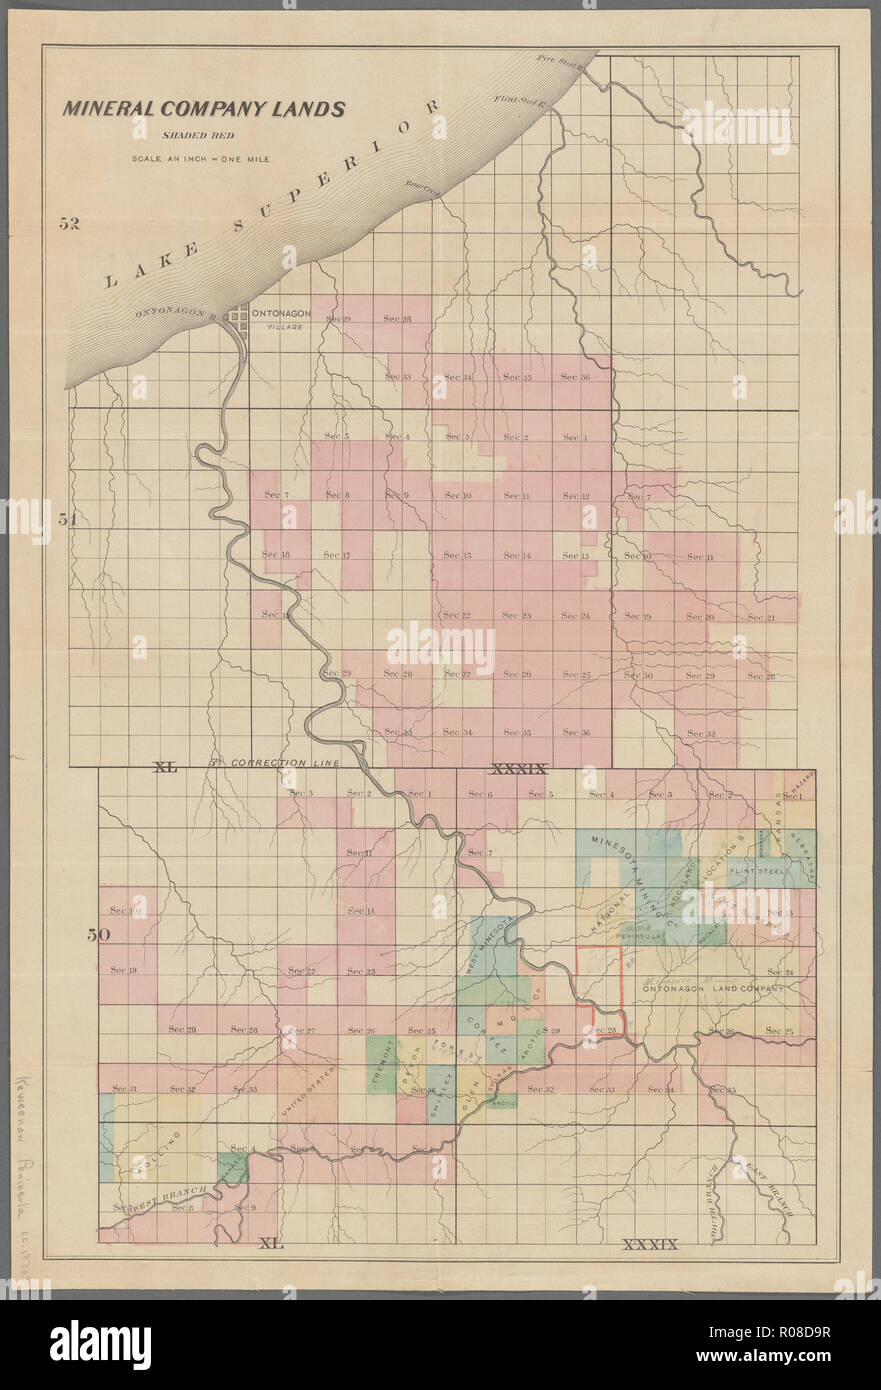 vintage american map from the old west days - Stock Image